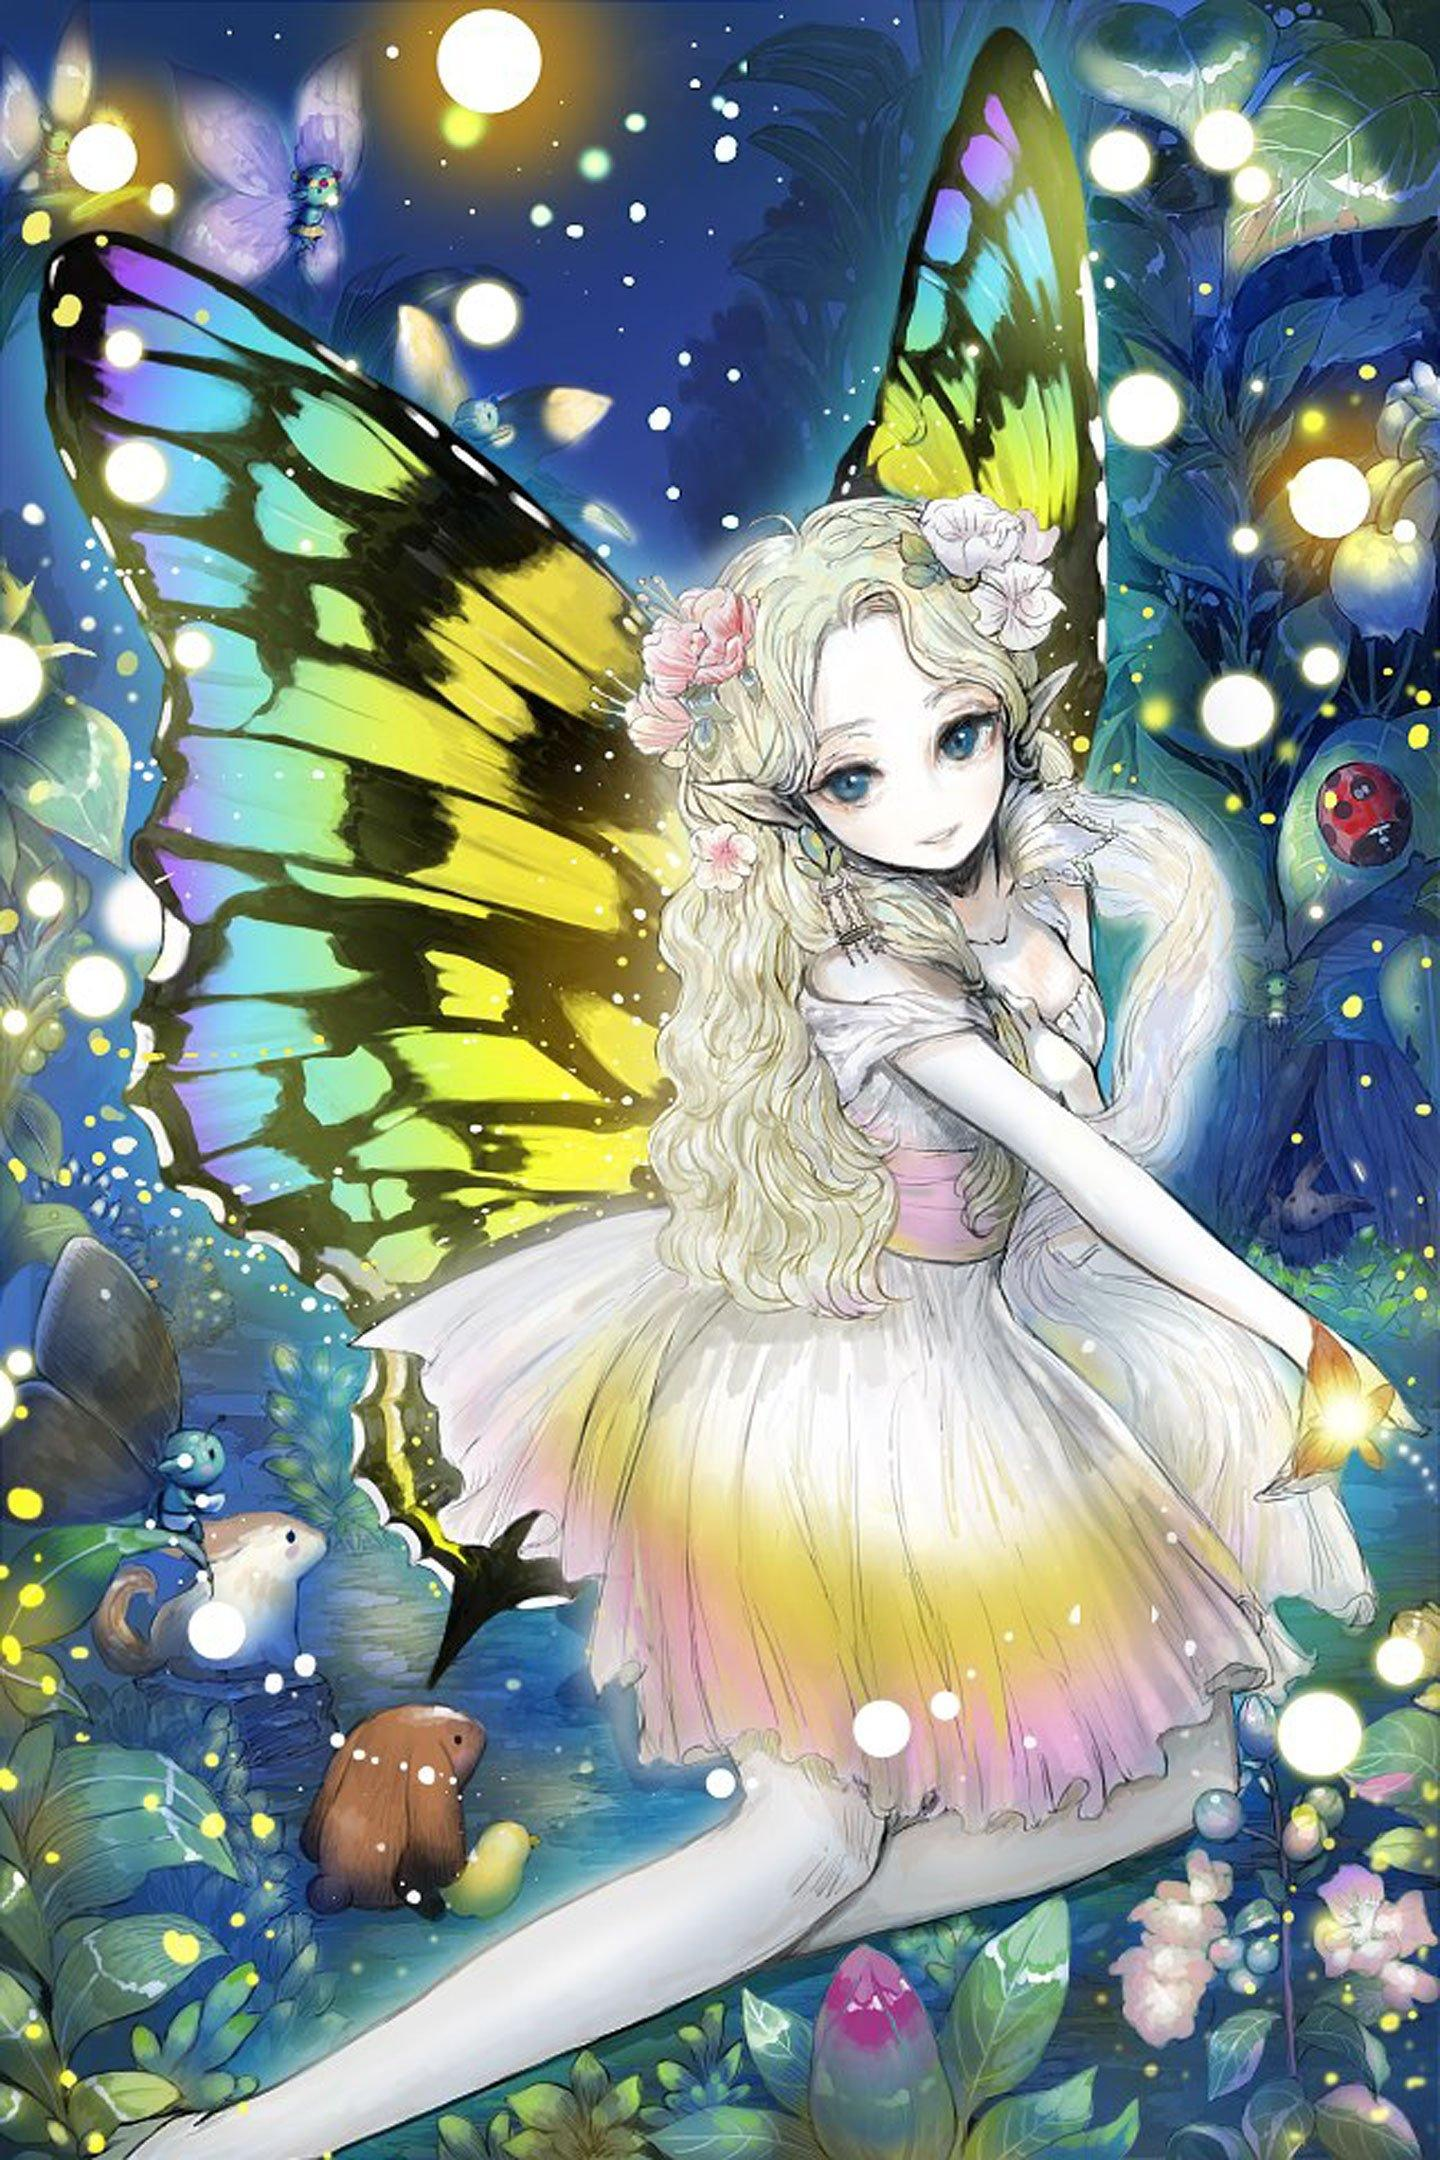 Anime Cute Fairy Wallpapers - Wallpaper Cave